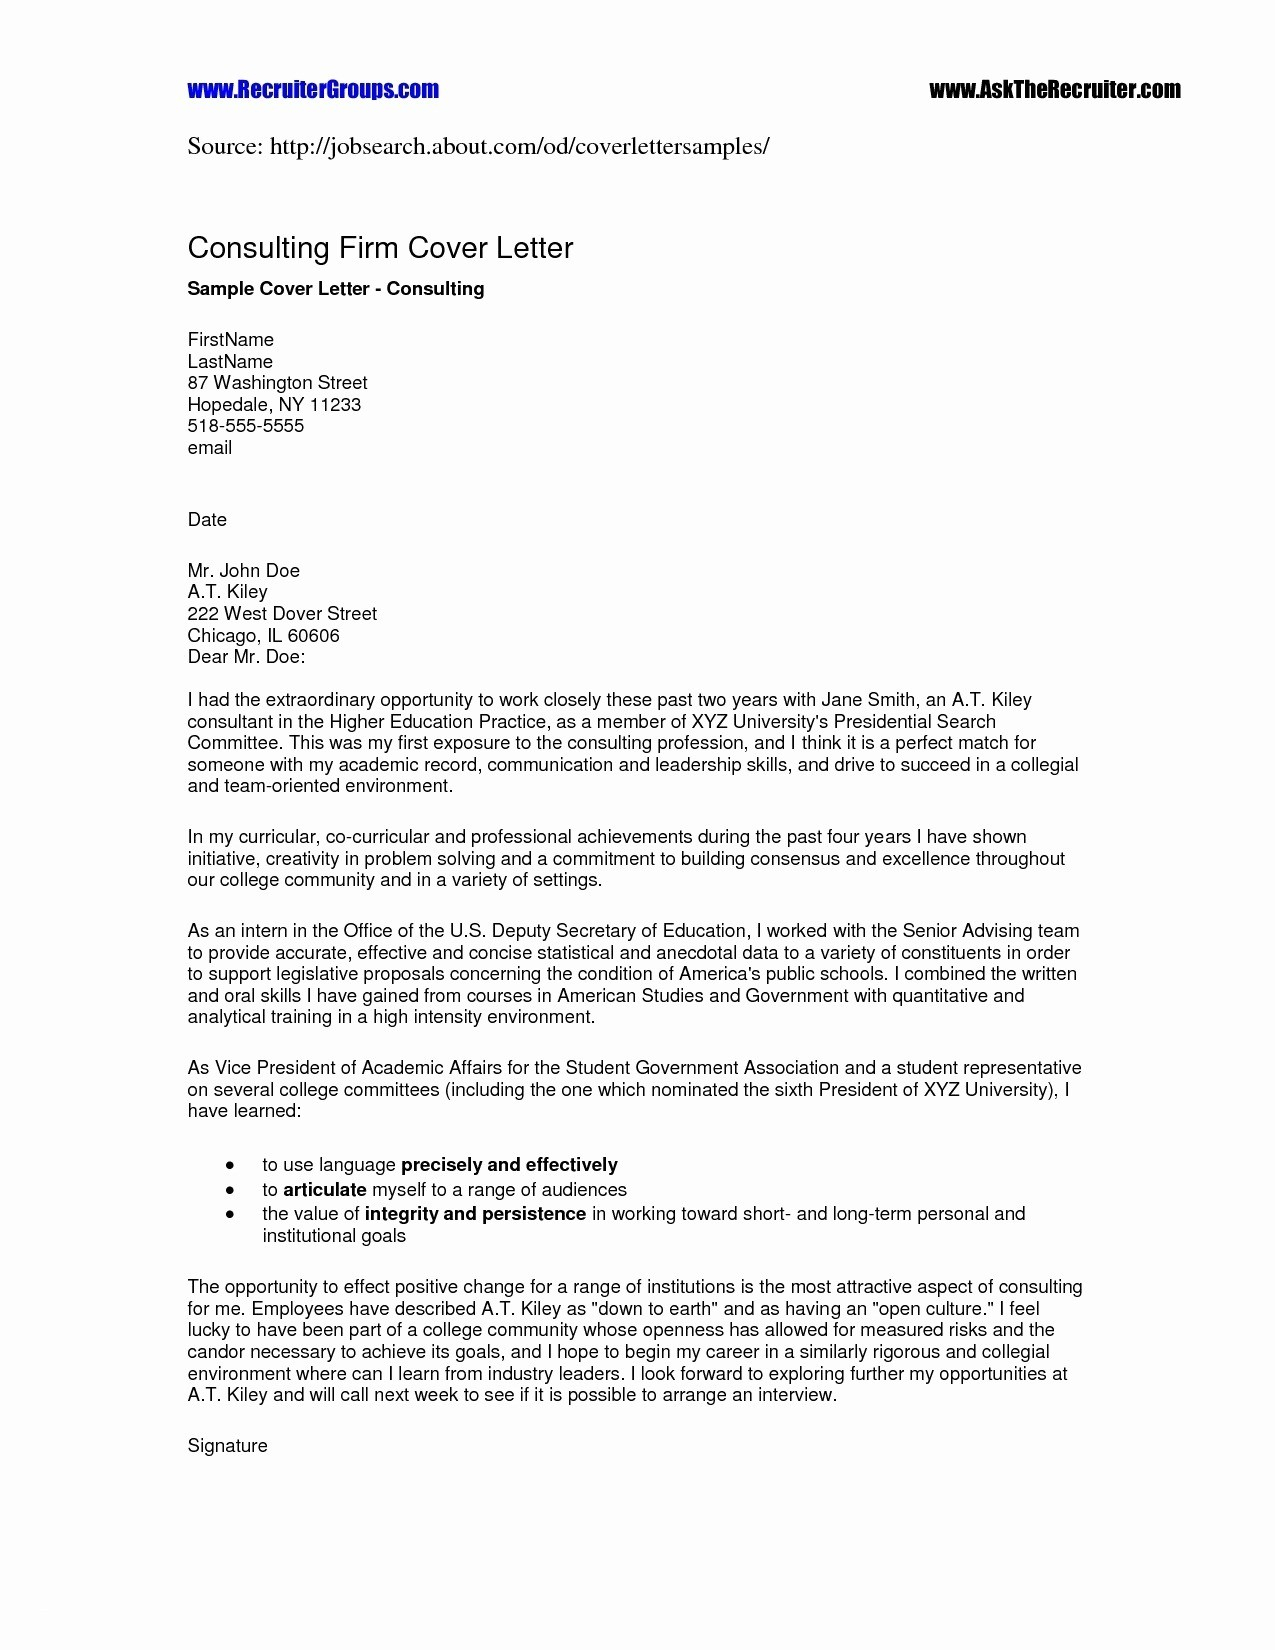 Cover Letter Template for Retail Job - Cover Letter for Retail Jobs Valid Resume Examples for Retail Job